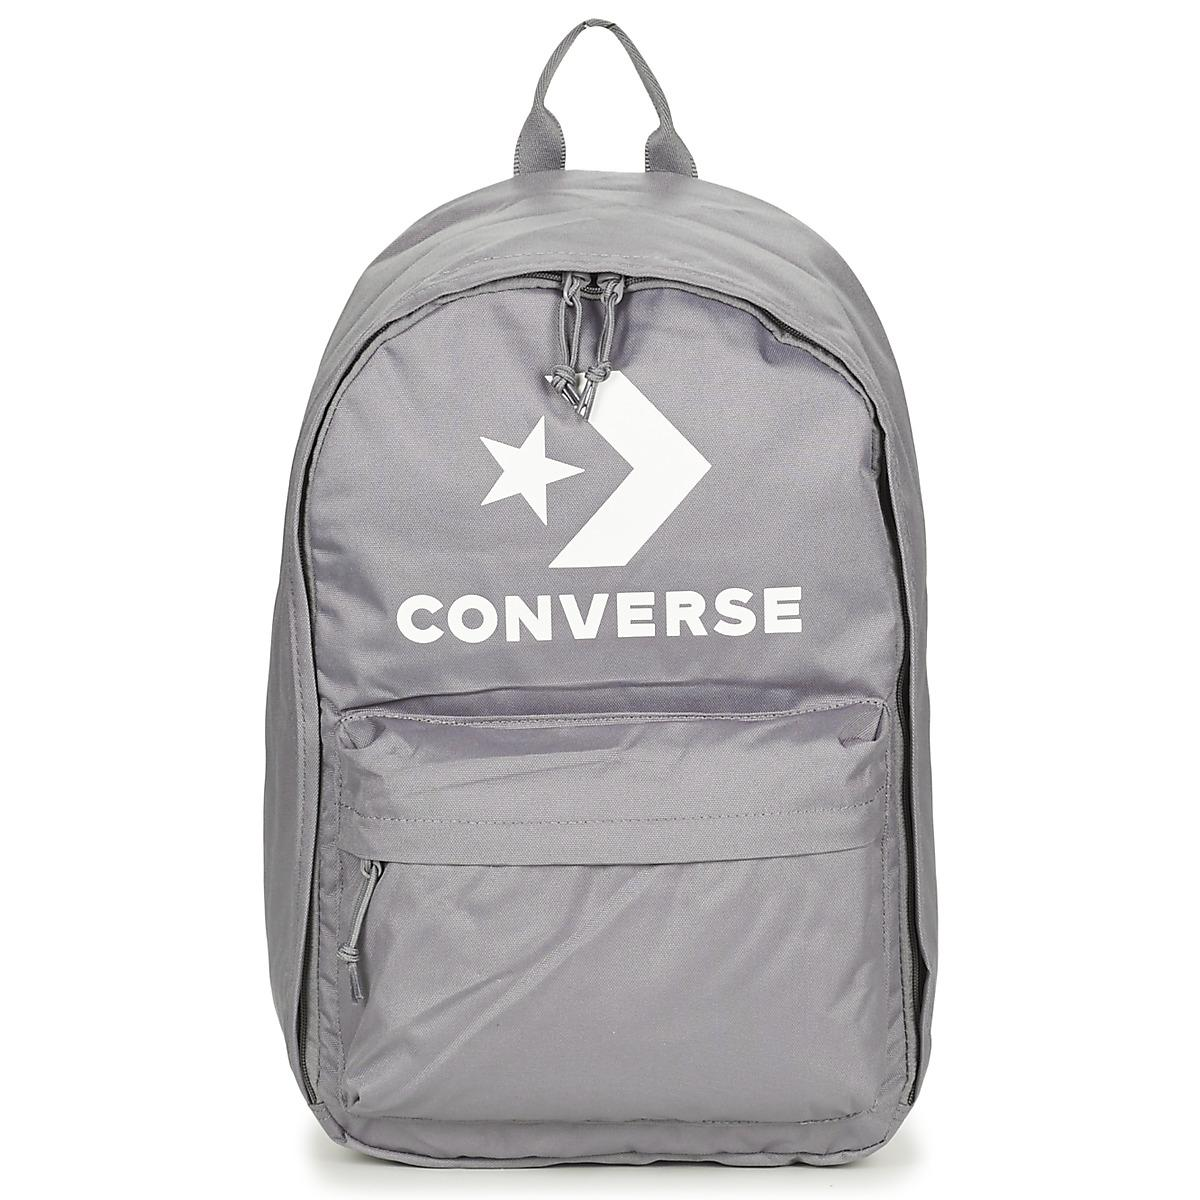 106b903ce67ac1 Converse Edc 22 Backpack Backpack in Gray for Men - Lyst